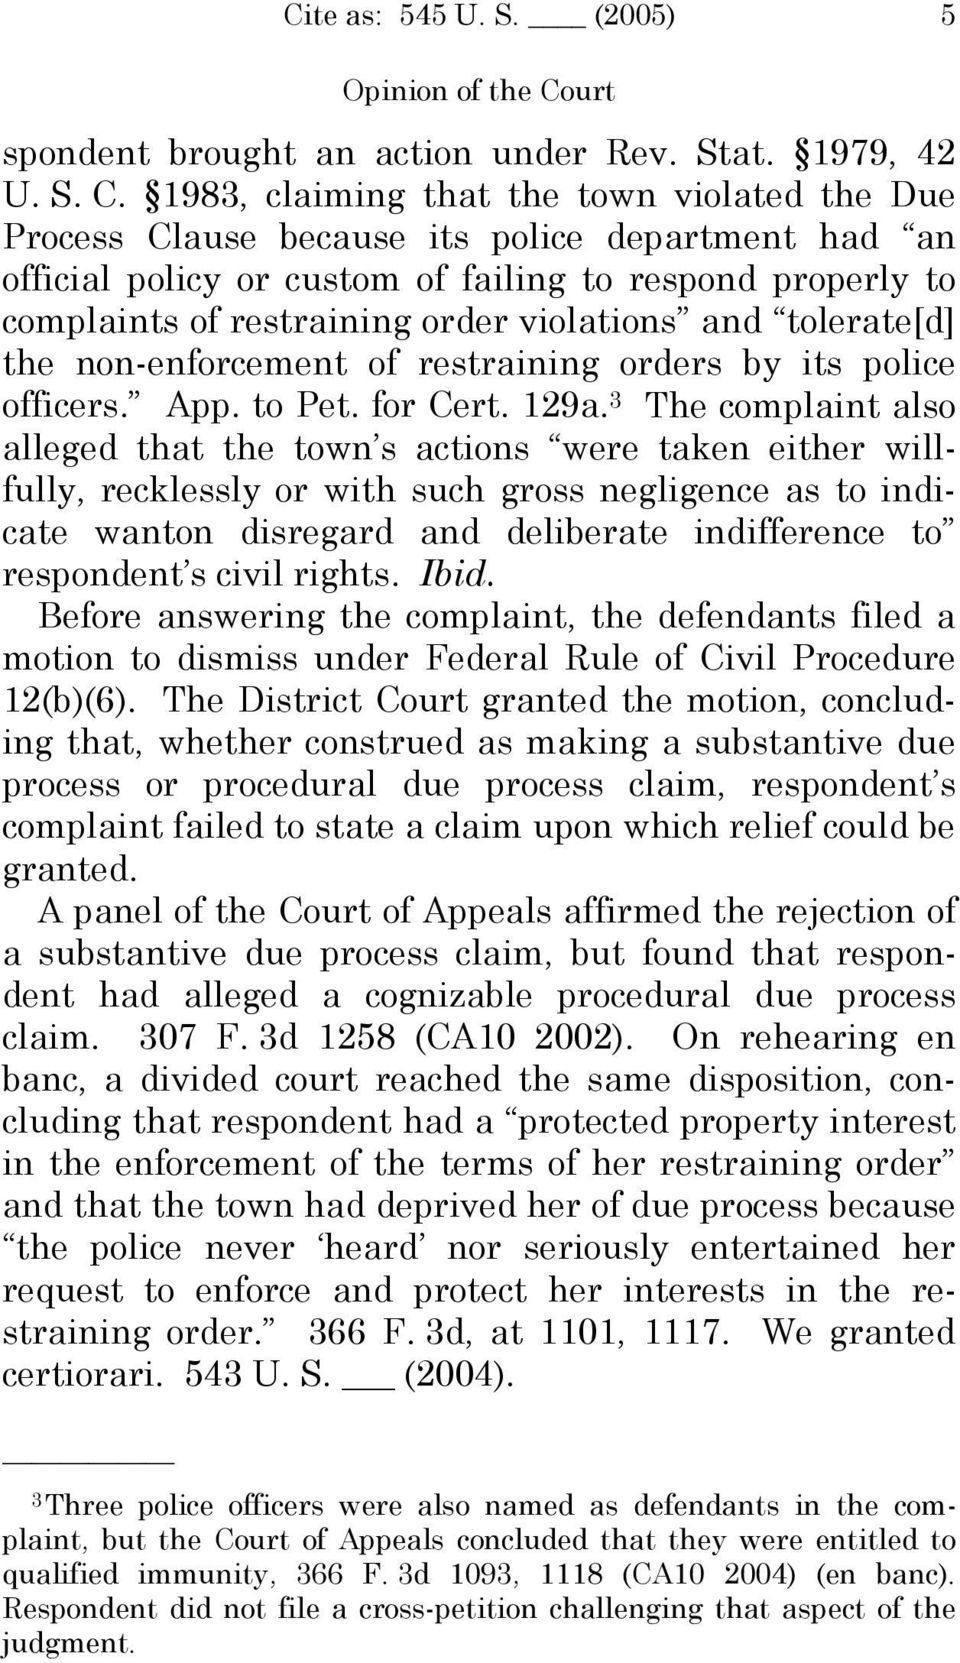 1983, claiming that the town violated the Due Process Clause because its police department had an official policy or custom of failing to respond properly to complaints of restraining order